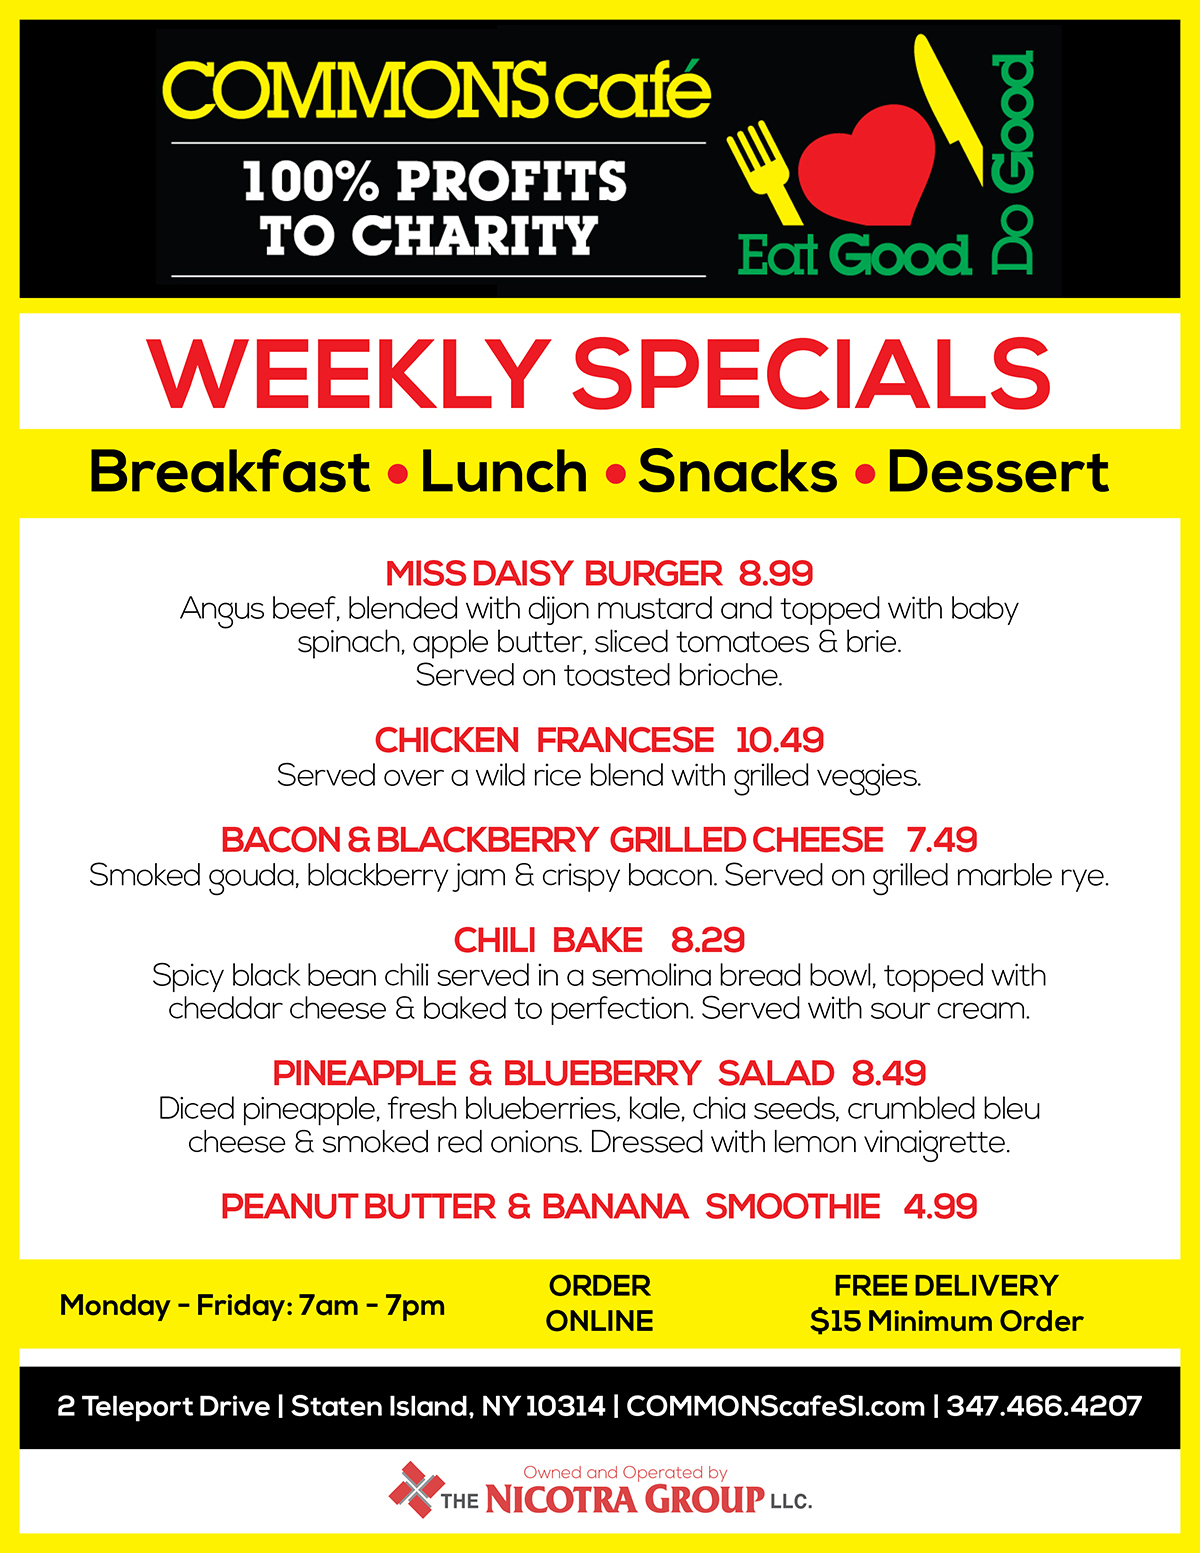 COMMONS CAFE WEEKLY SPECIALS_AUG22